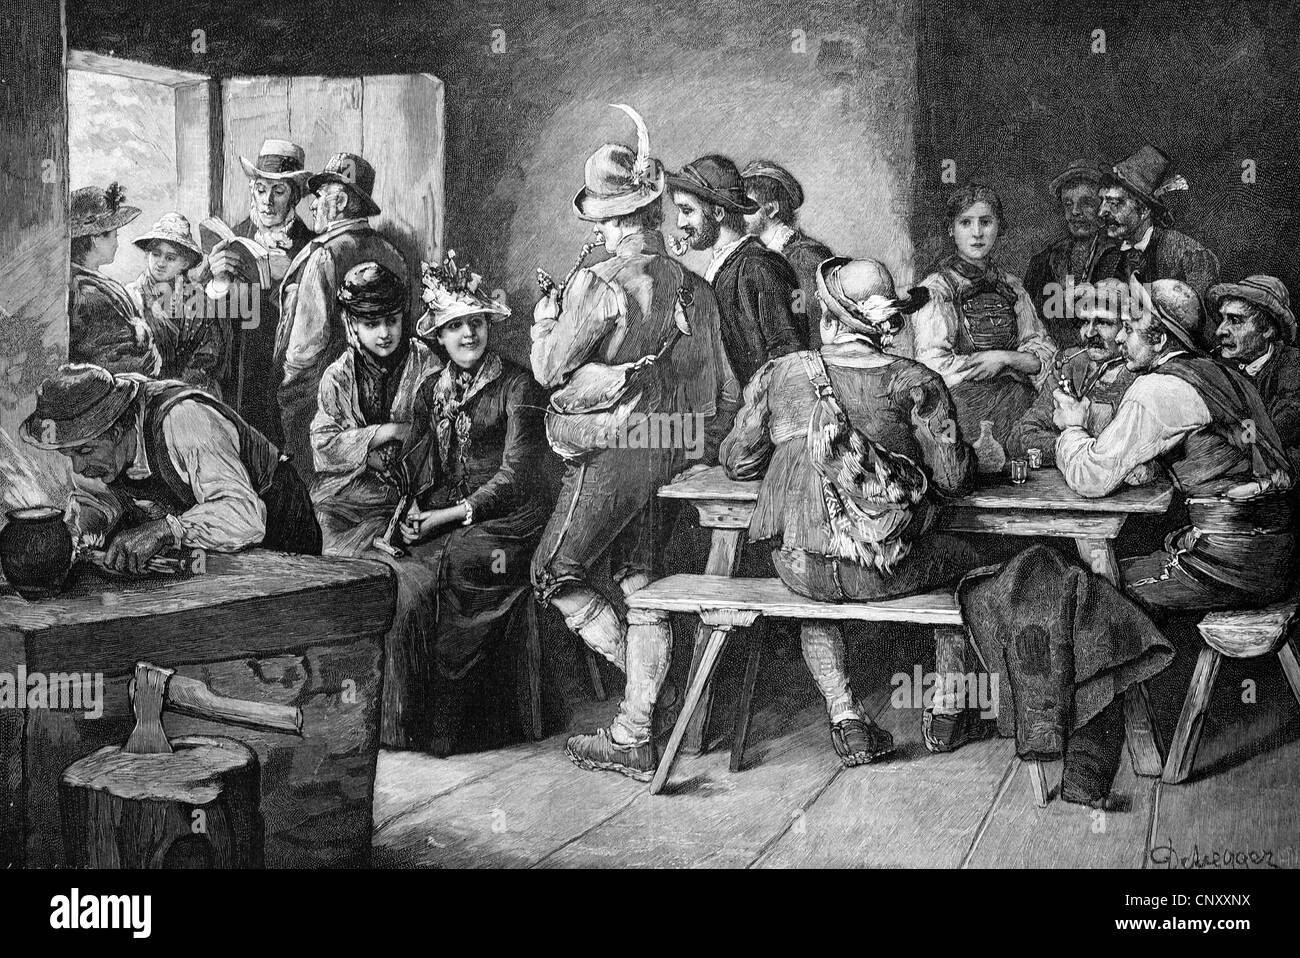 Group of peolpe at the inn, historic wood engraving, about 1897 - Stock Image